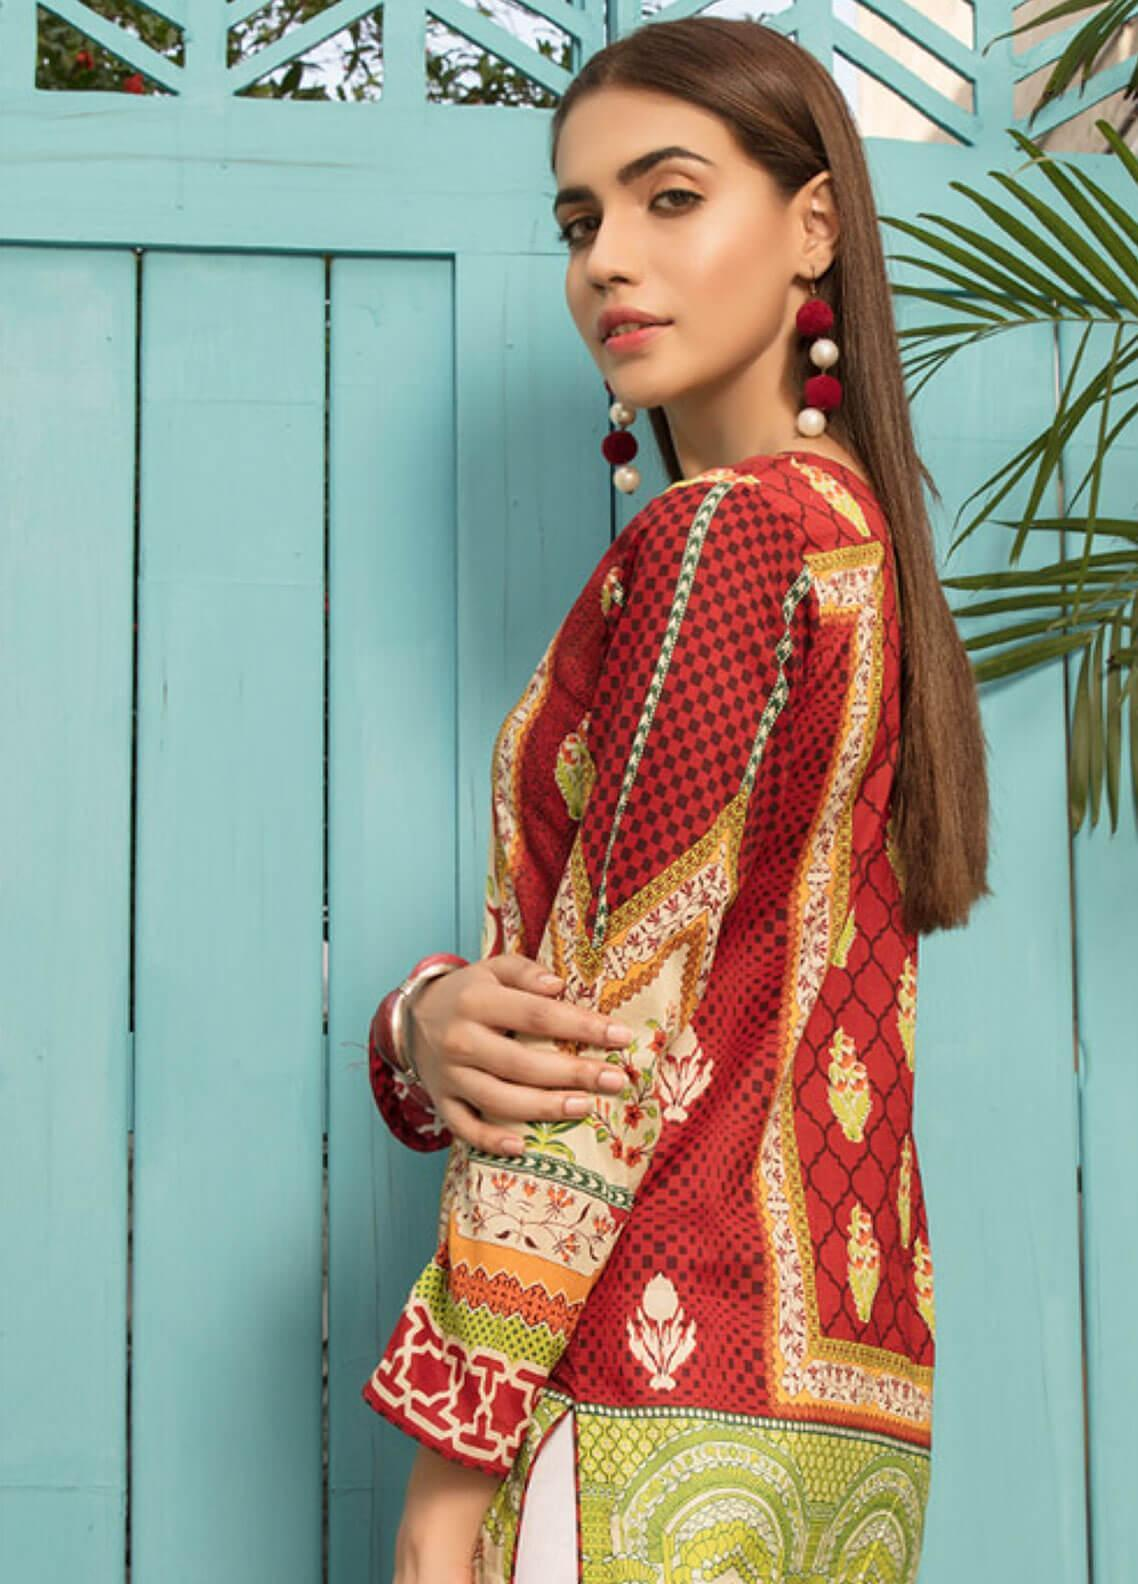 fc346265c8 Sanoor by Noor Fatima Printed Lawn Unstitched Kurties SNO19F 868 - Festive  Collection. Online only